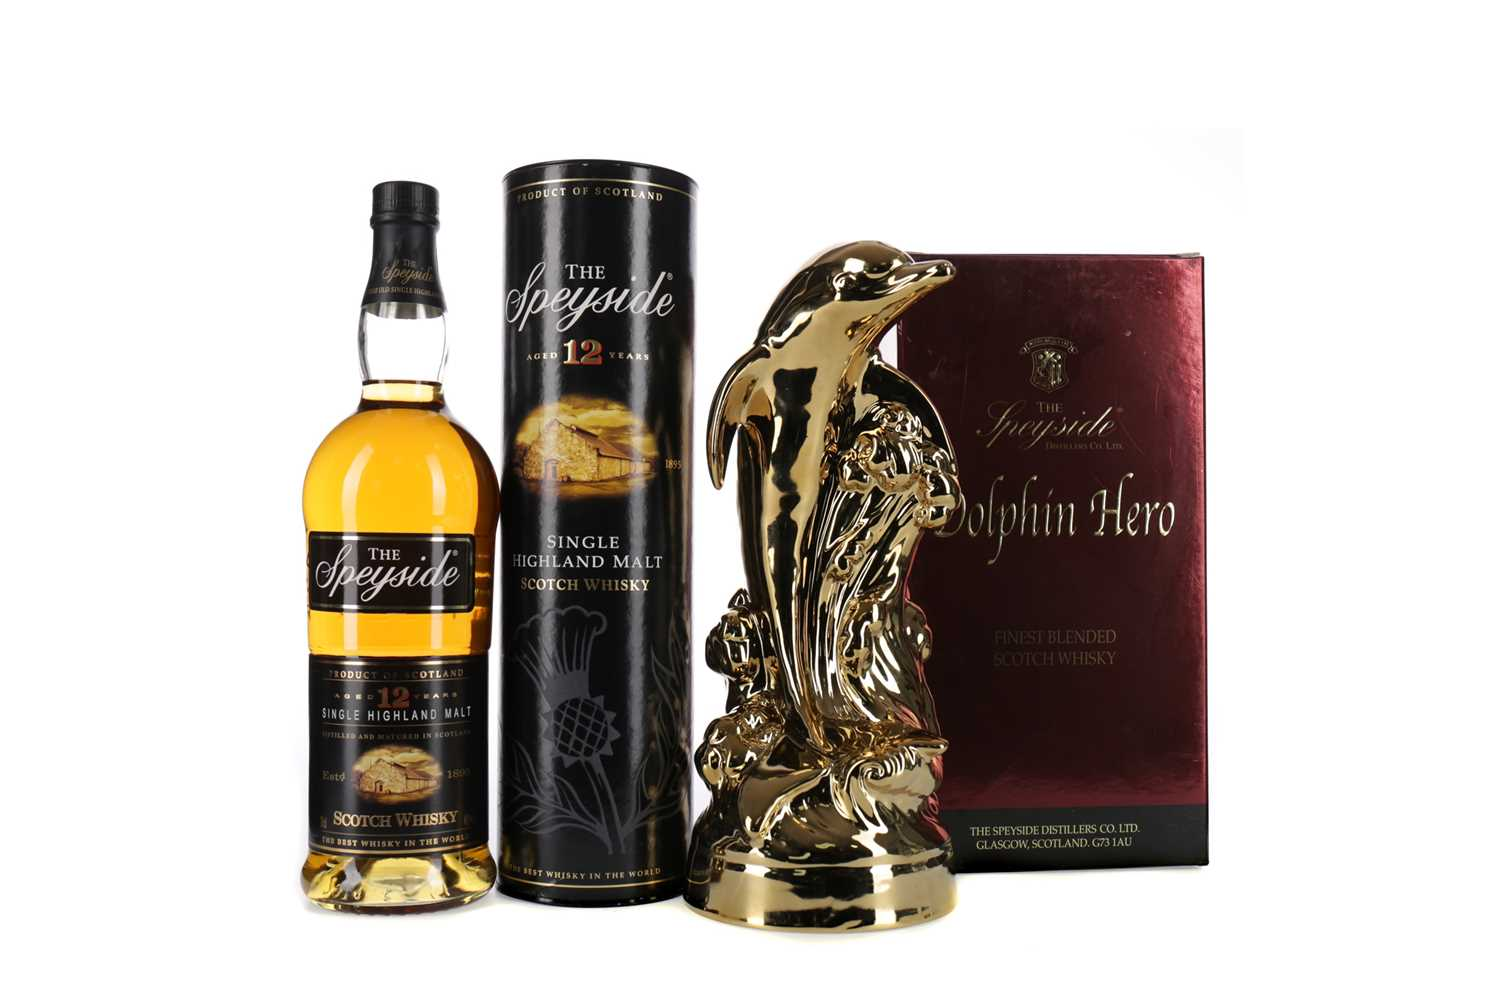 Lot 47 - THE SPEYSIDE DOLPHIN HERO BLEND AND SPEYSIDE AGED 12 YEARS